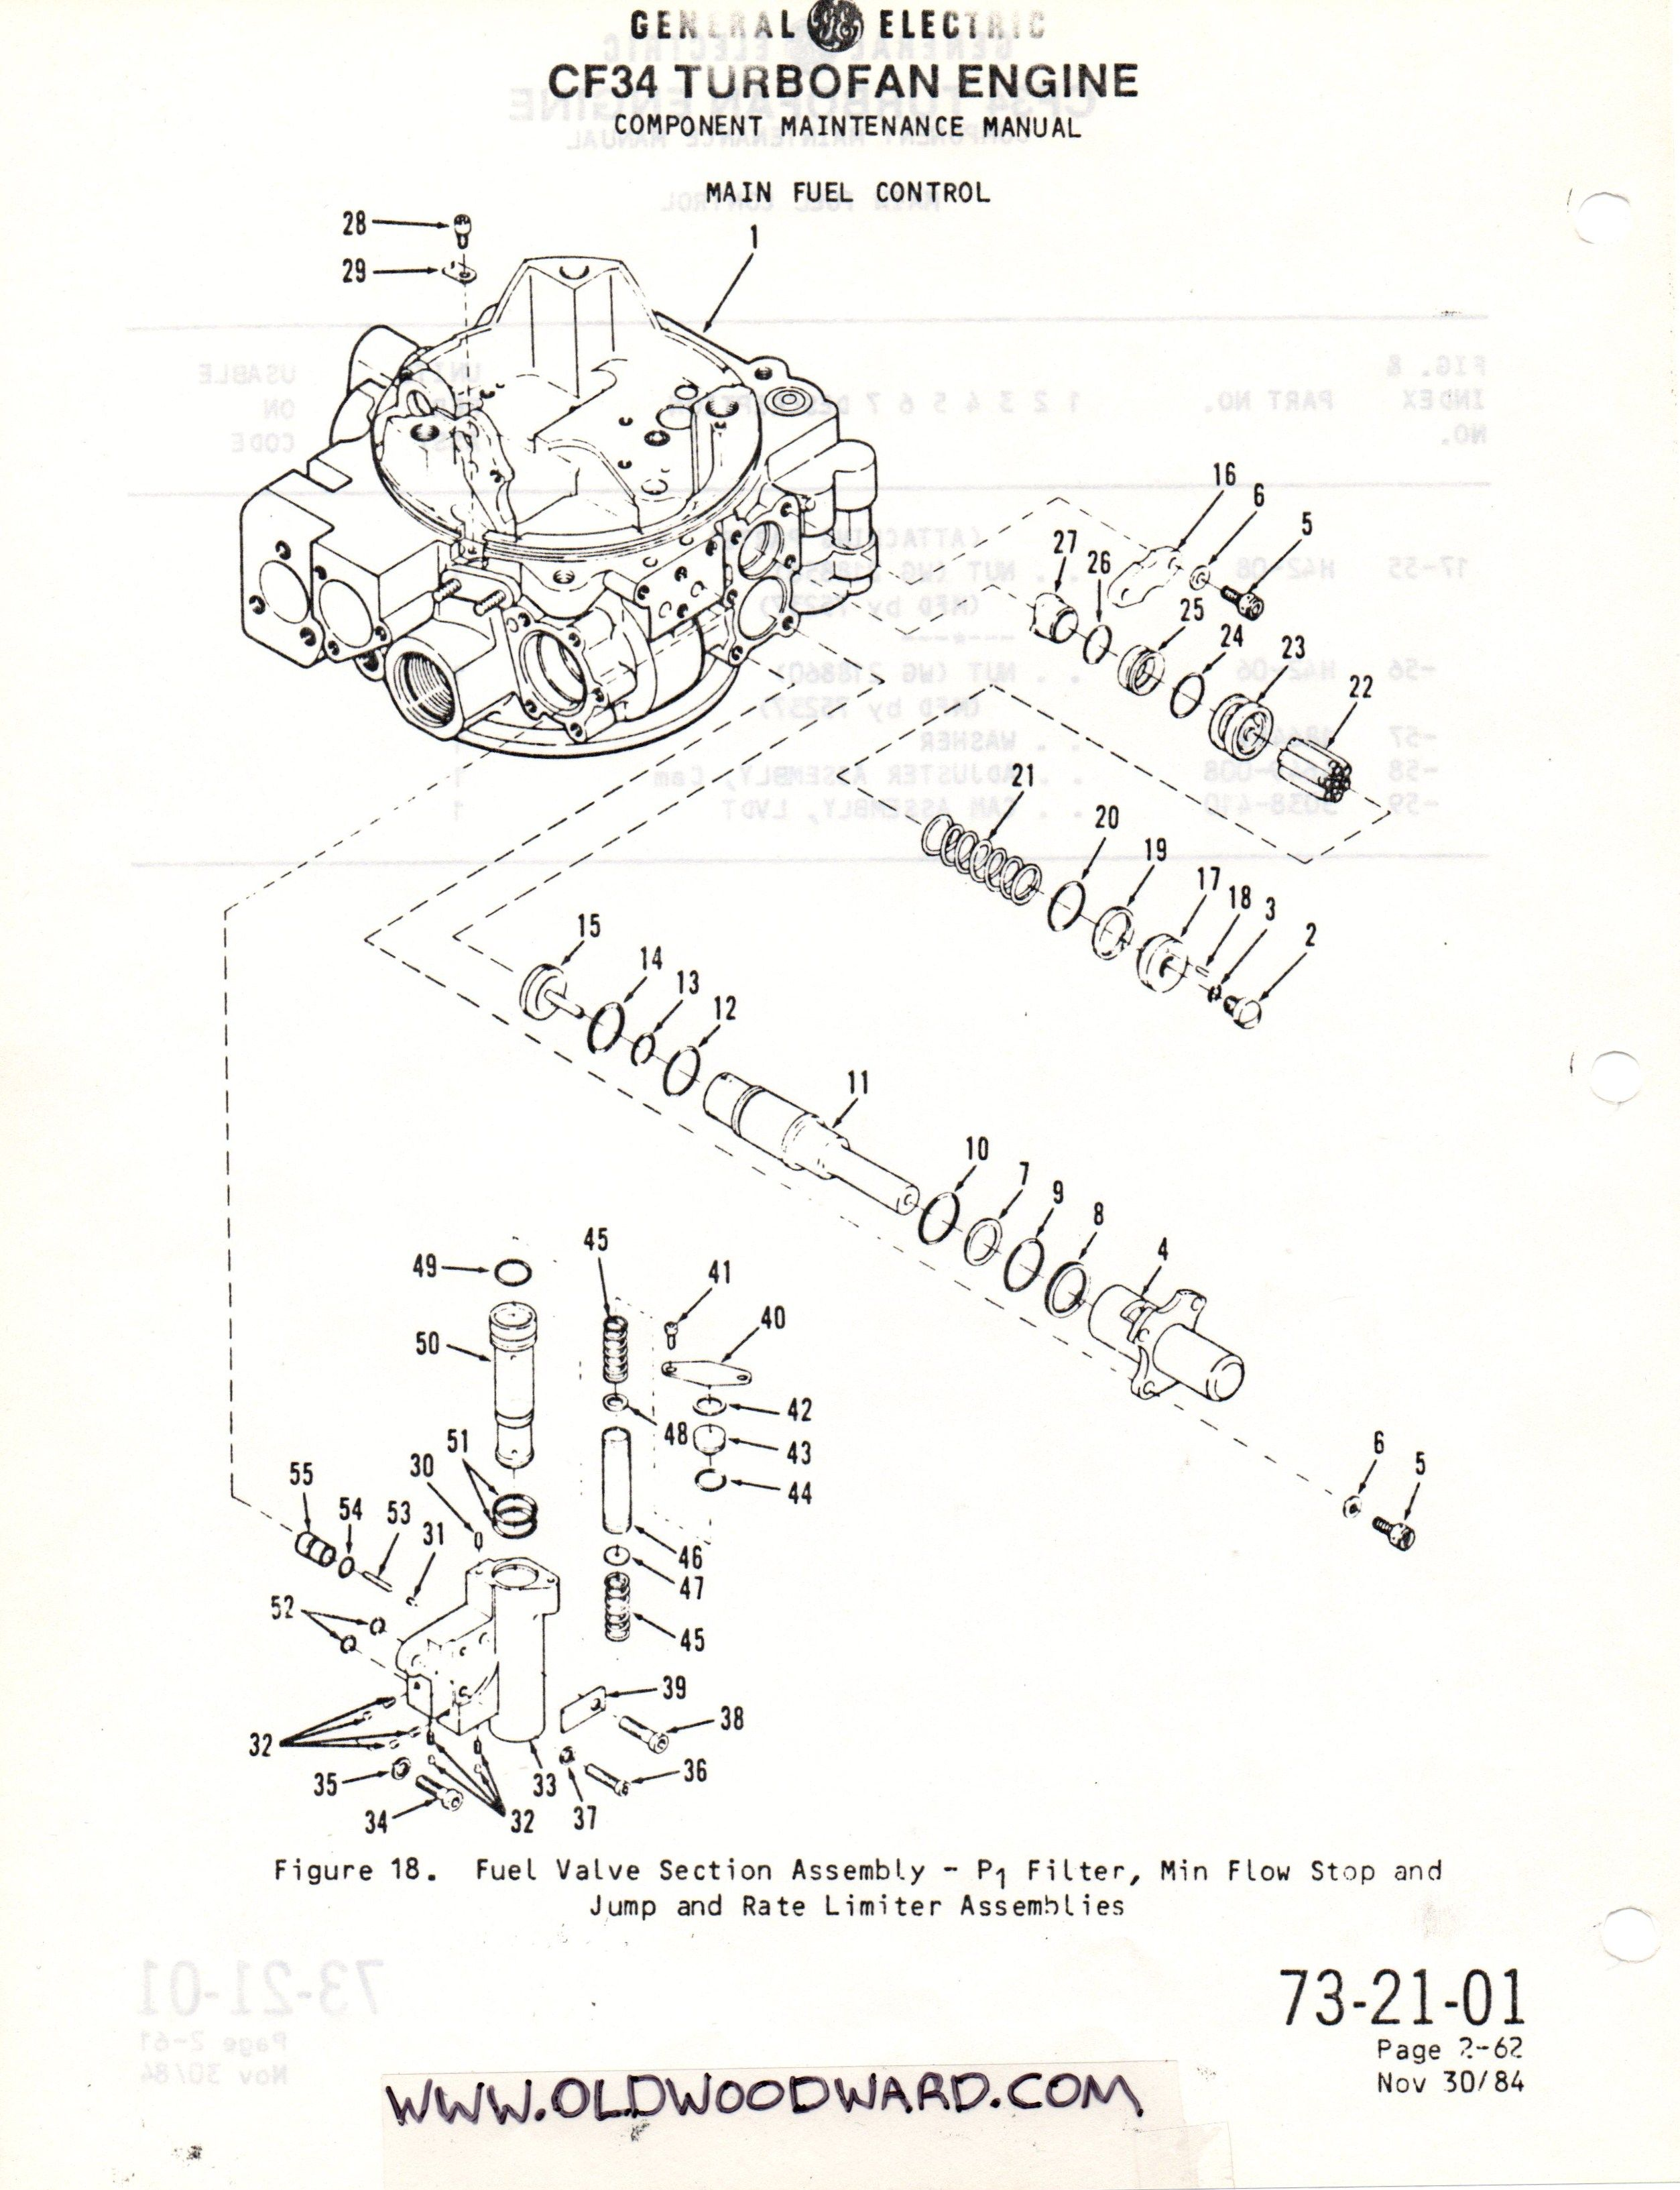 small resolution of woodward governor company main engine control component training manual schematic drawing woodward governor